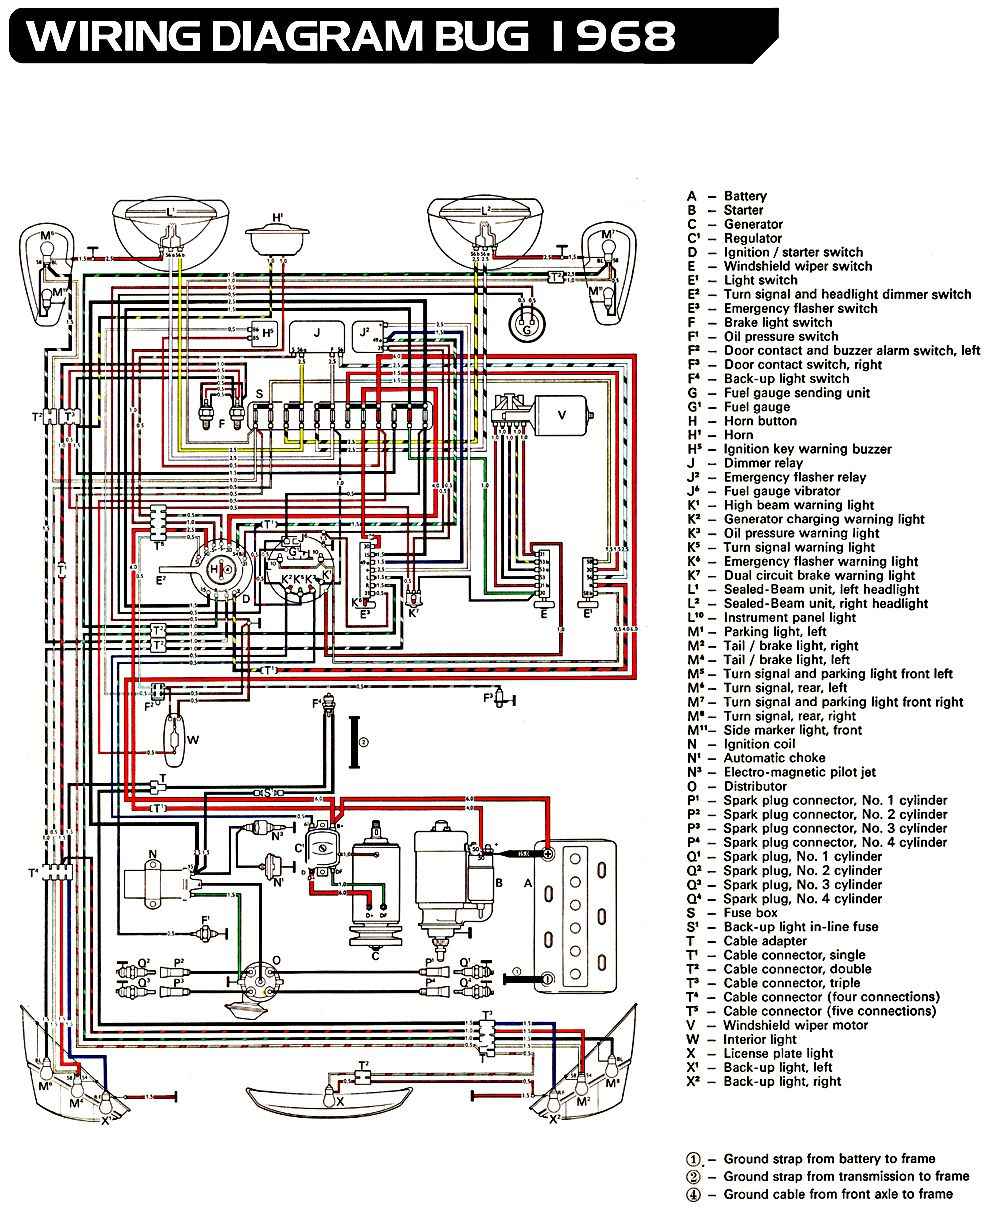 3a1908112d3826270ed5e3be362292bf 1969 vw beetle wiring harness 1974 vw beetle complete wiring Toyota Corolla Wiring Harness Diagram at cos-gaming.co